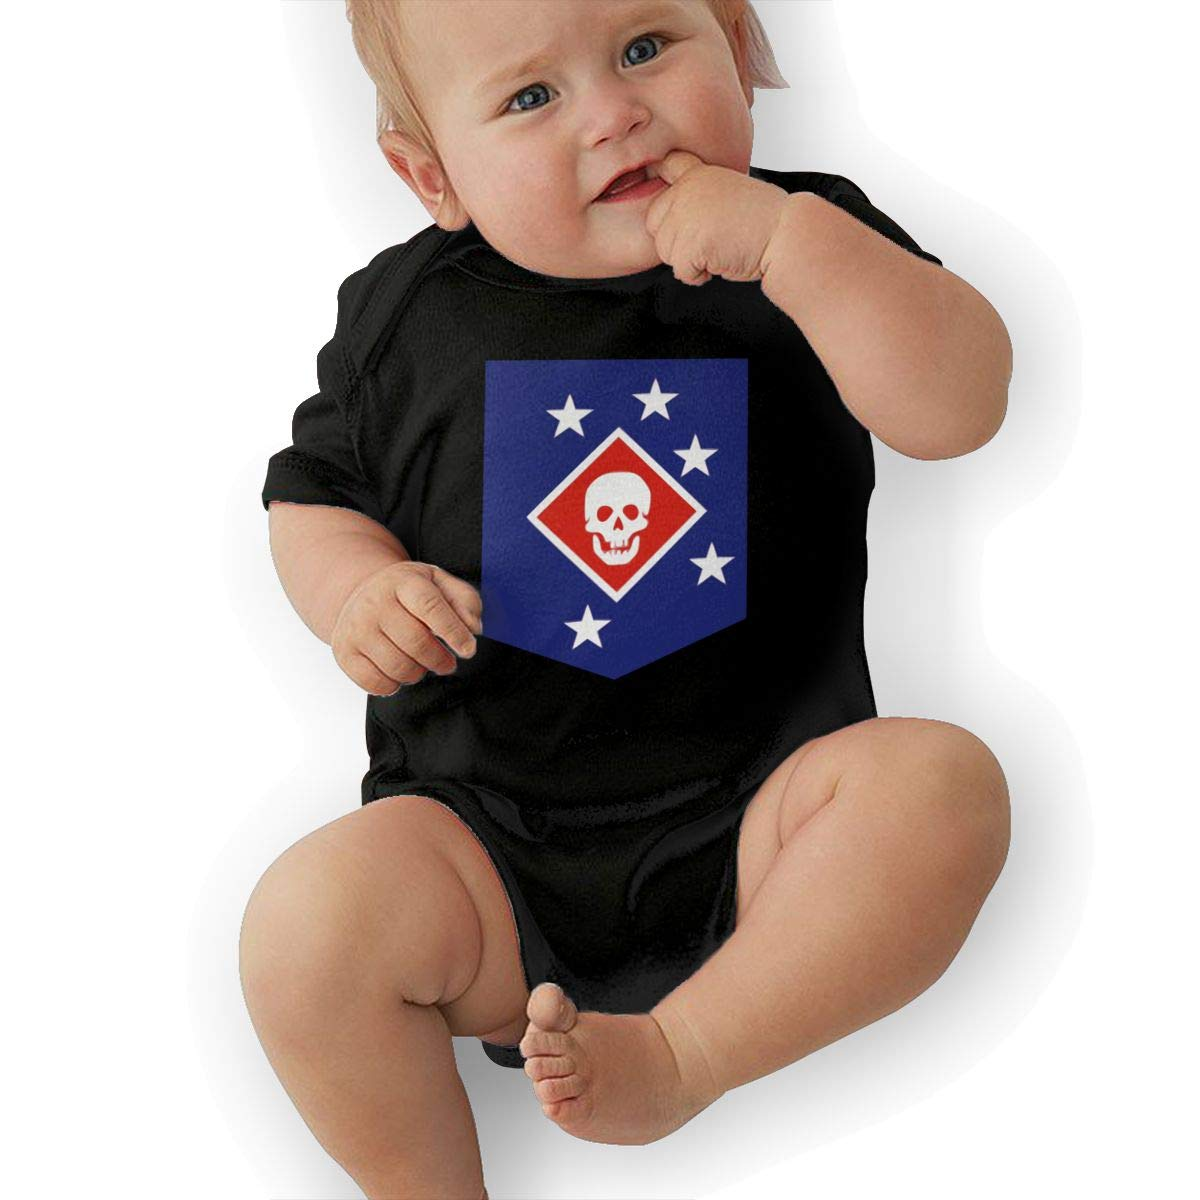 Bodysuits Clothes Onesies Jumpsuits Outfits Black Marine Raiders Baby Pajamas